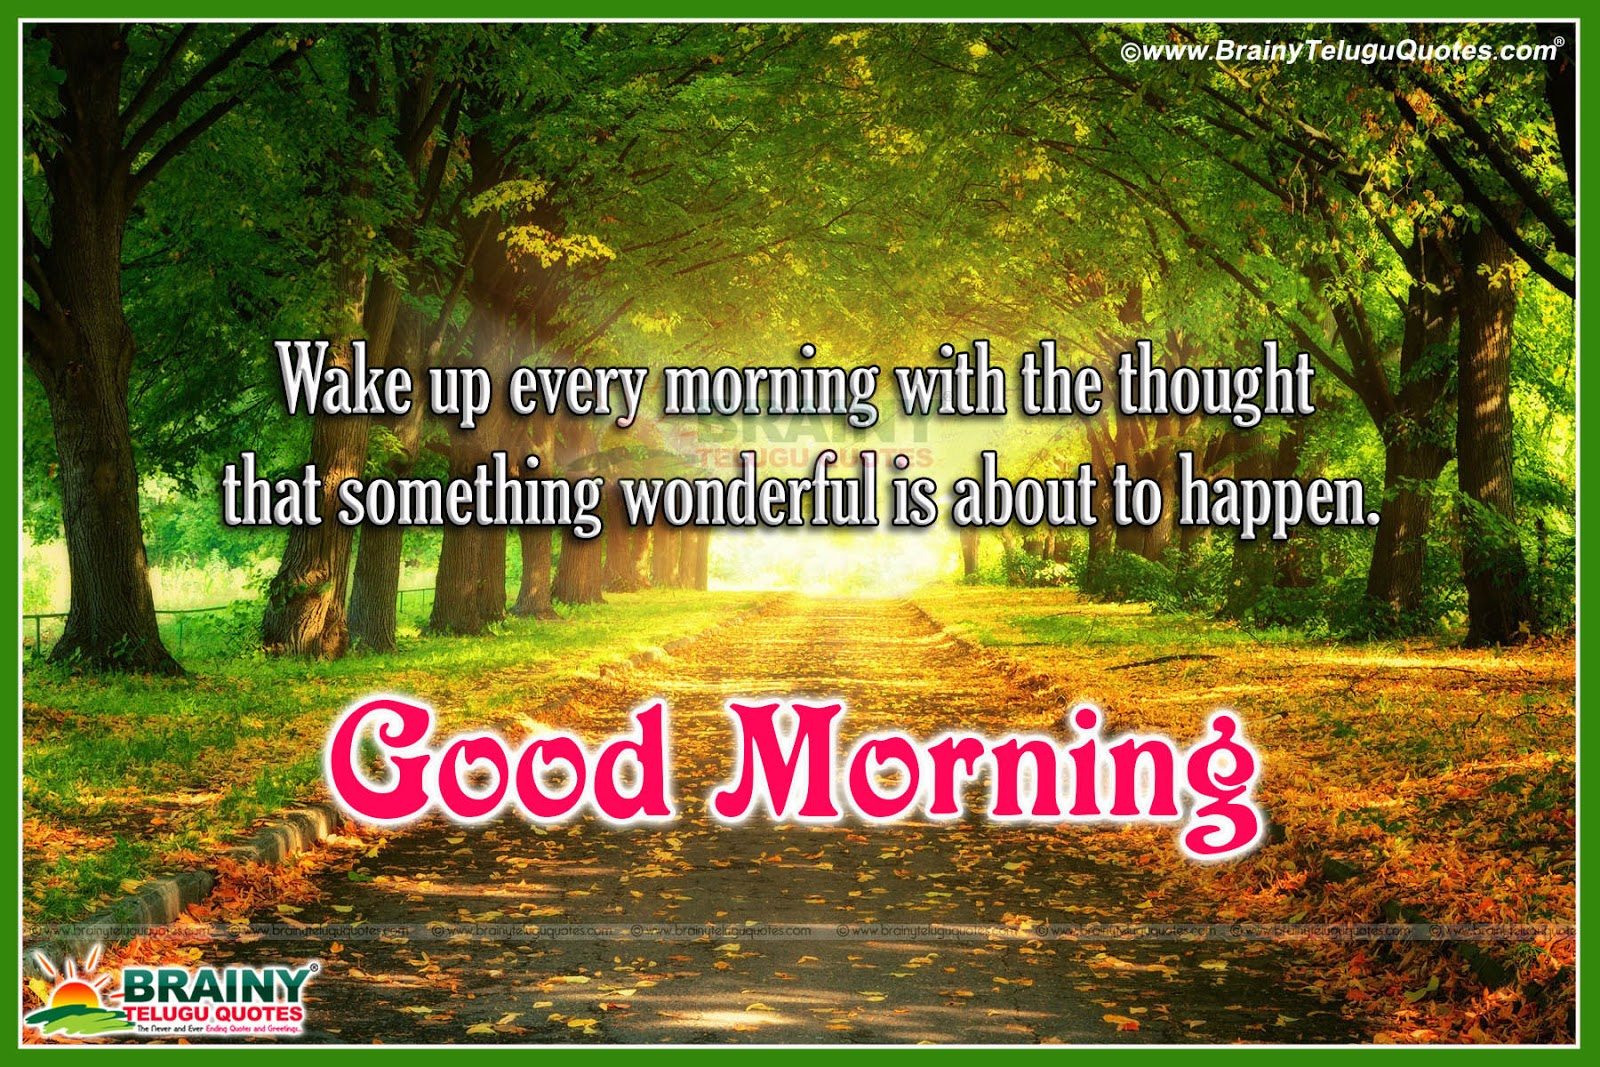 Best Good Morning Smiling Quotes Images In English